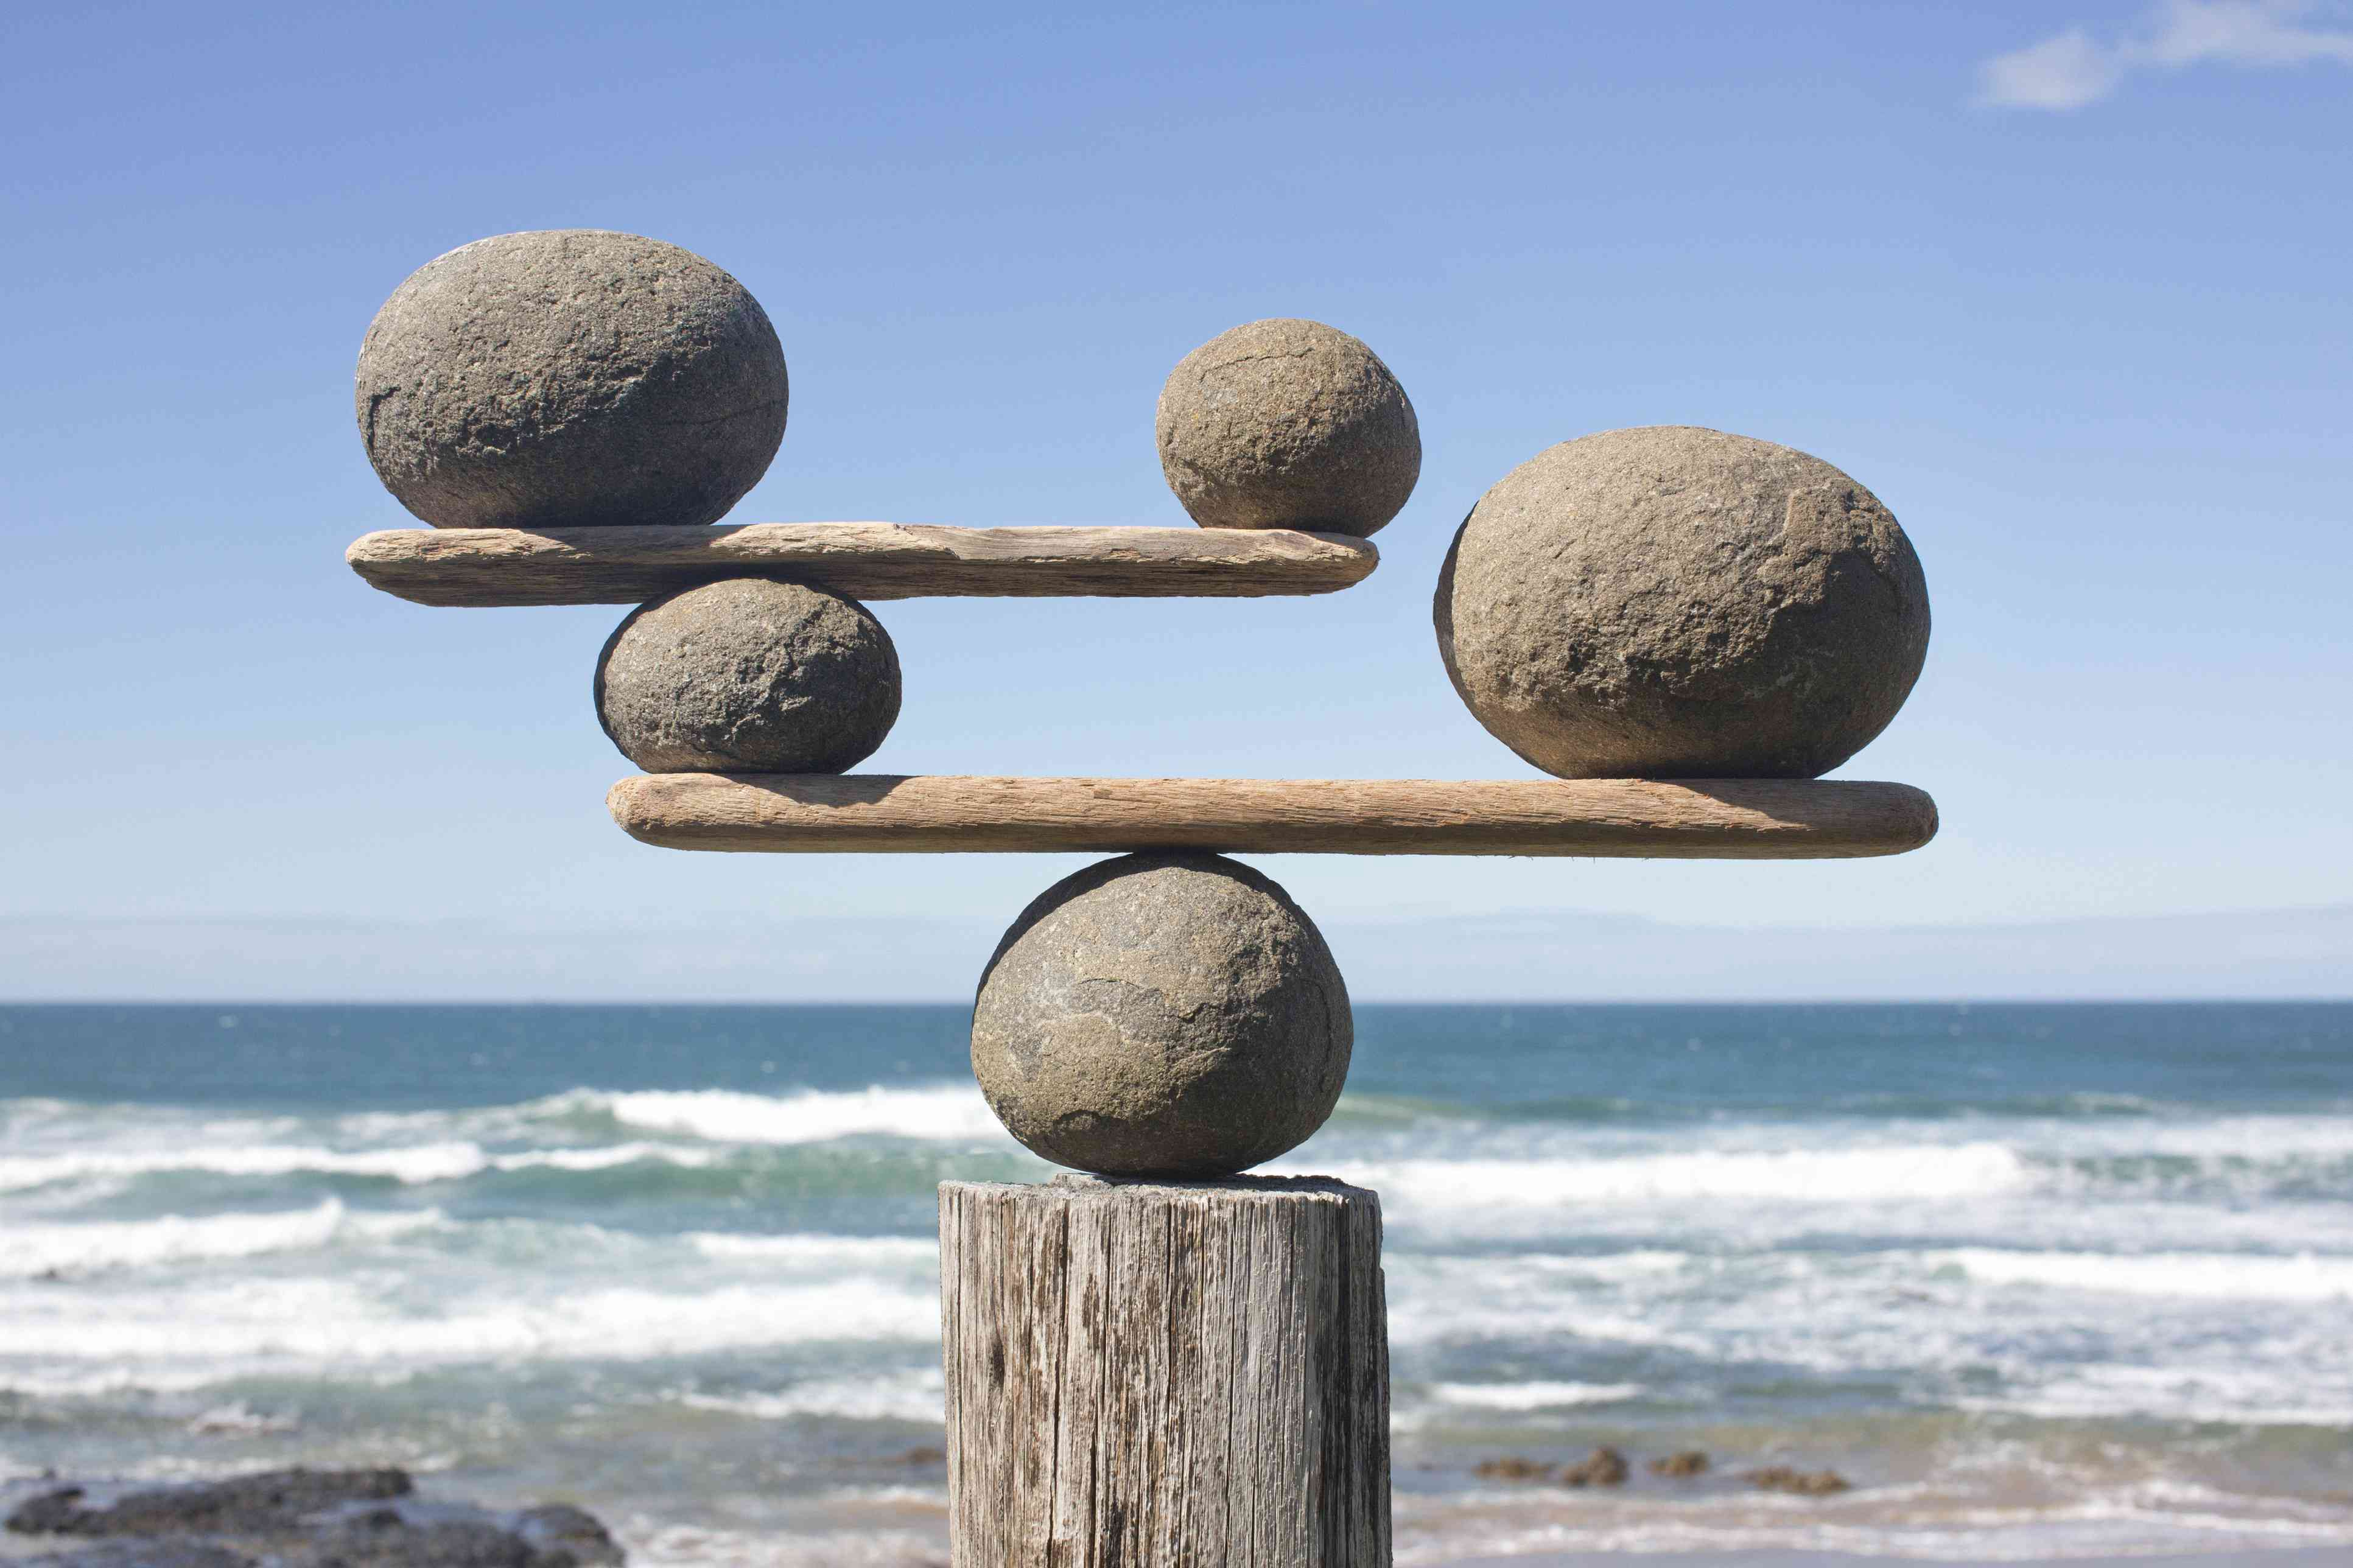 Solving Balanced Brackets In Javascript With Stacks